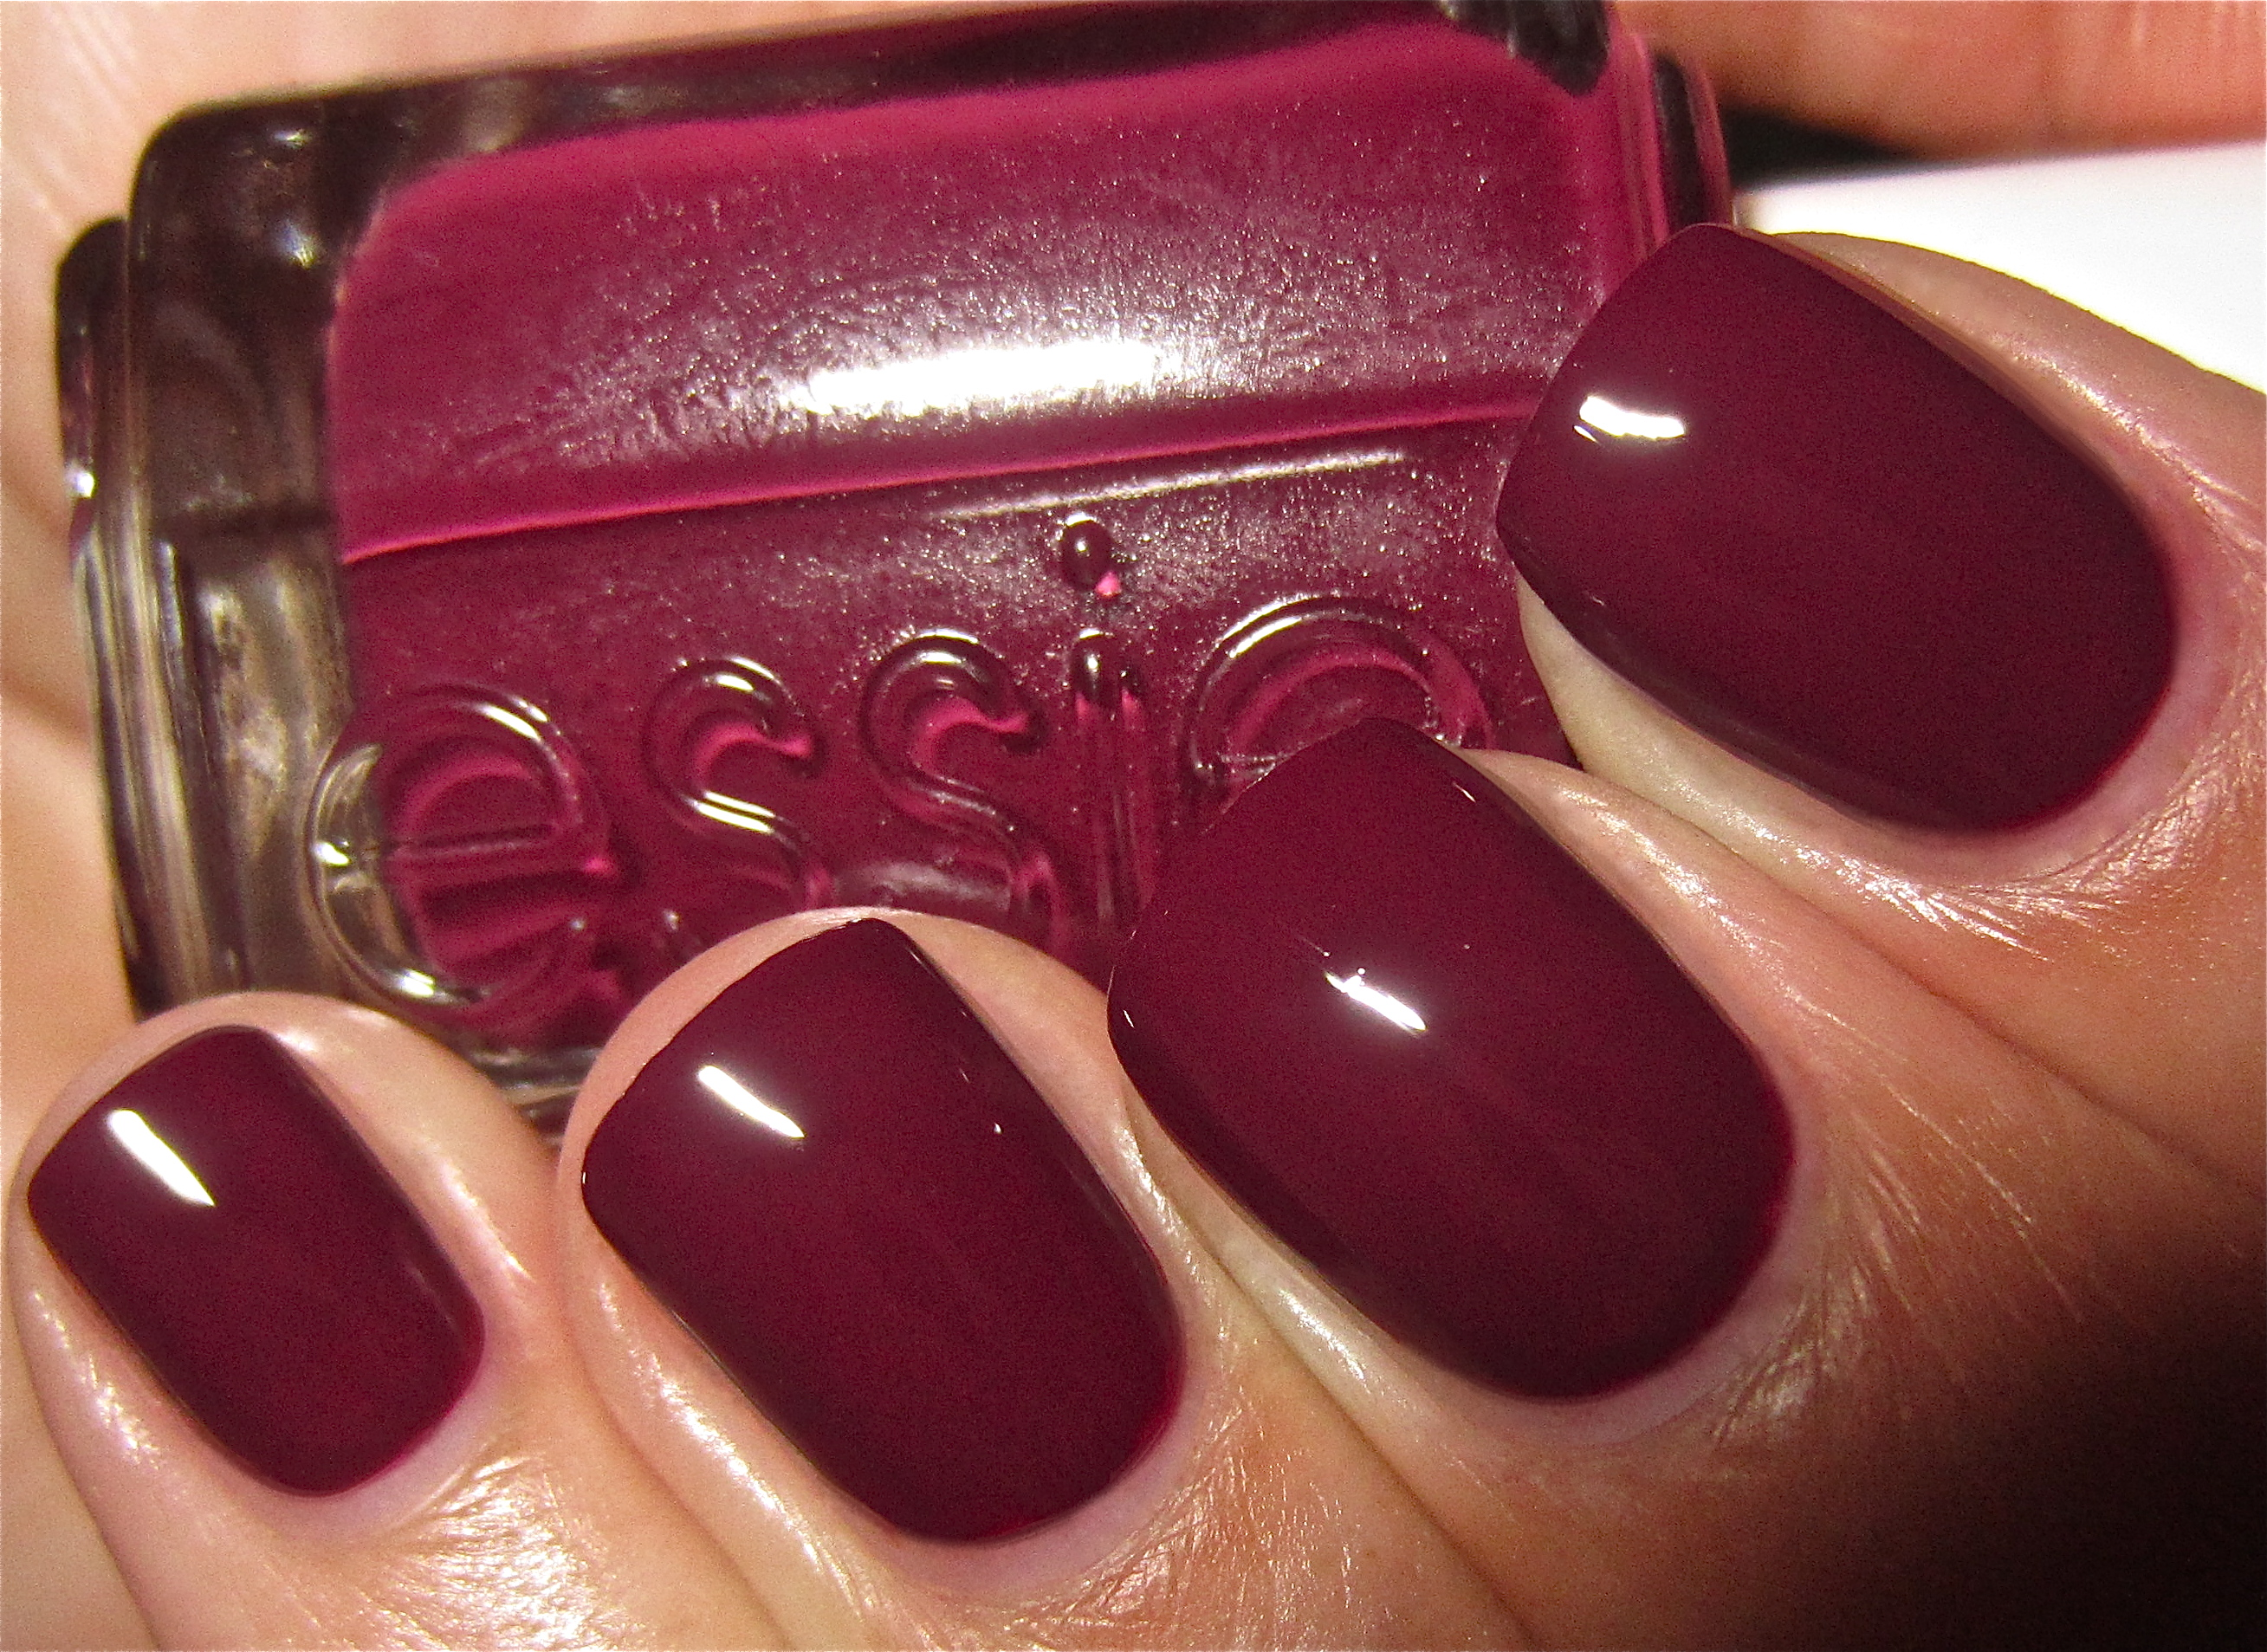 Essie Recessionista swatch | ommorphia beauty bar